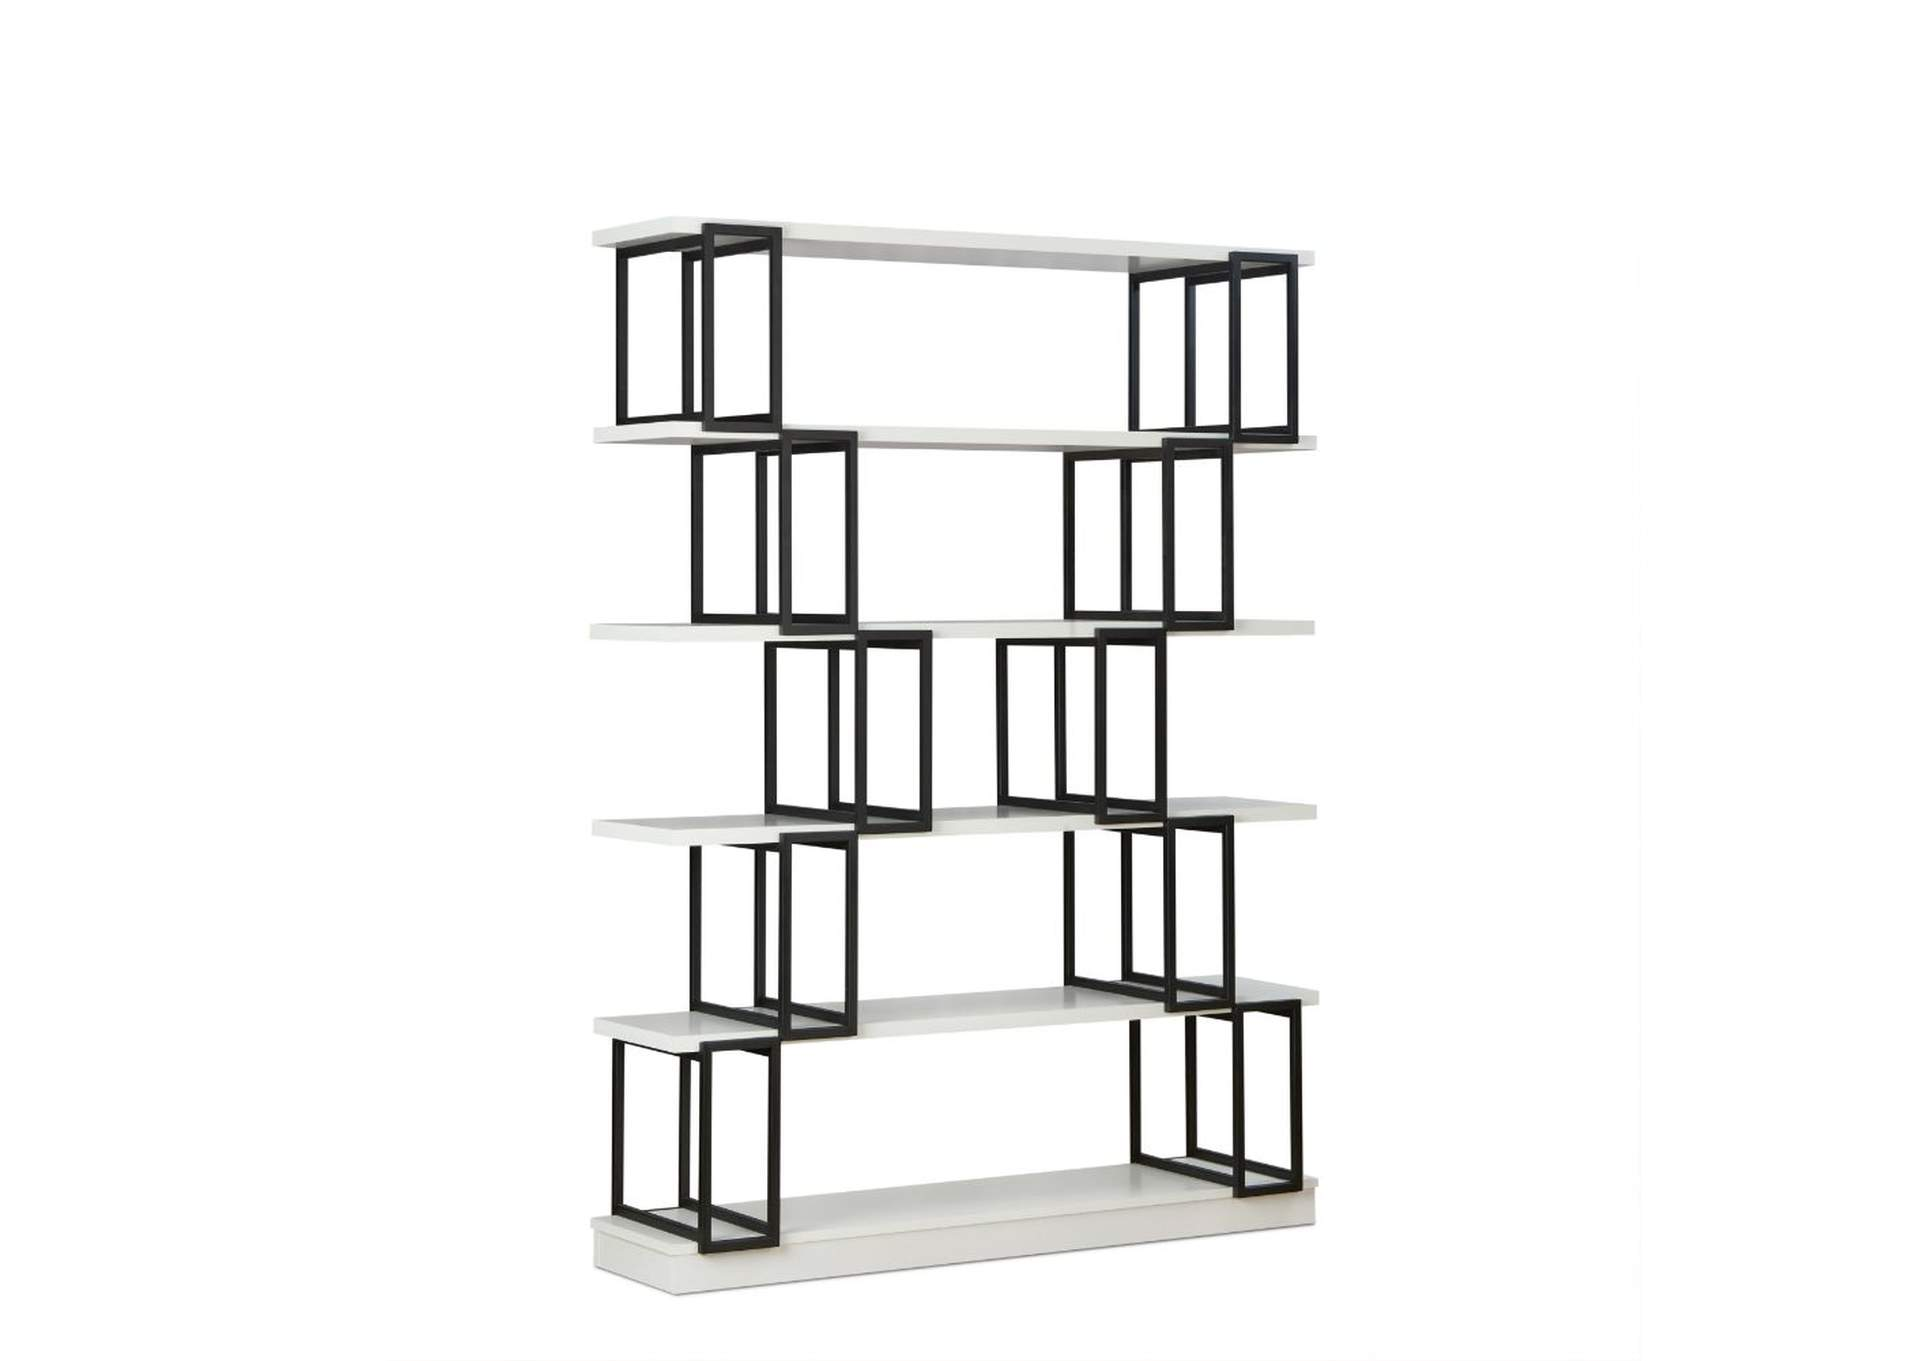 Verne Quick Silver Bookcase,Acme